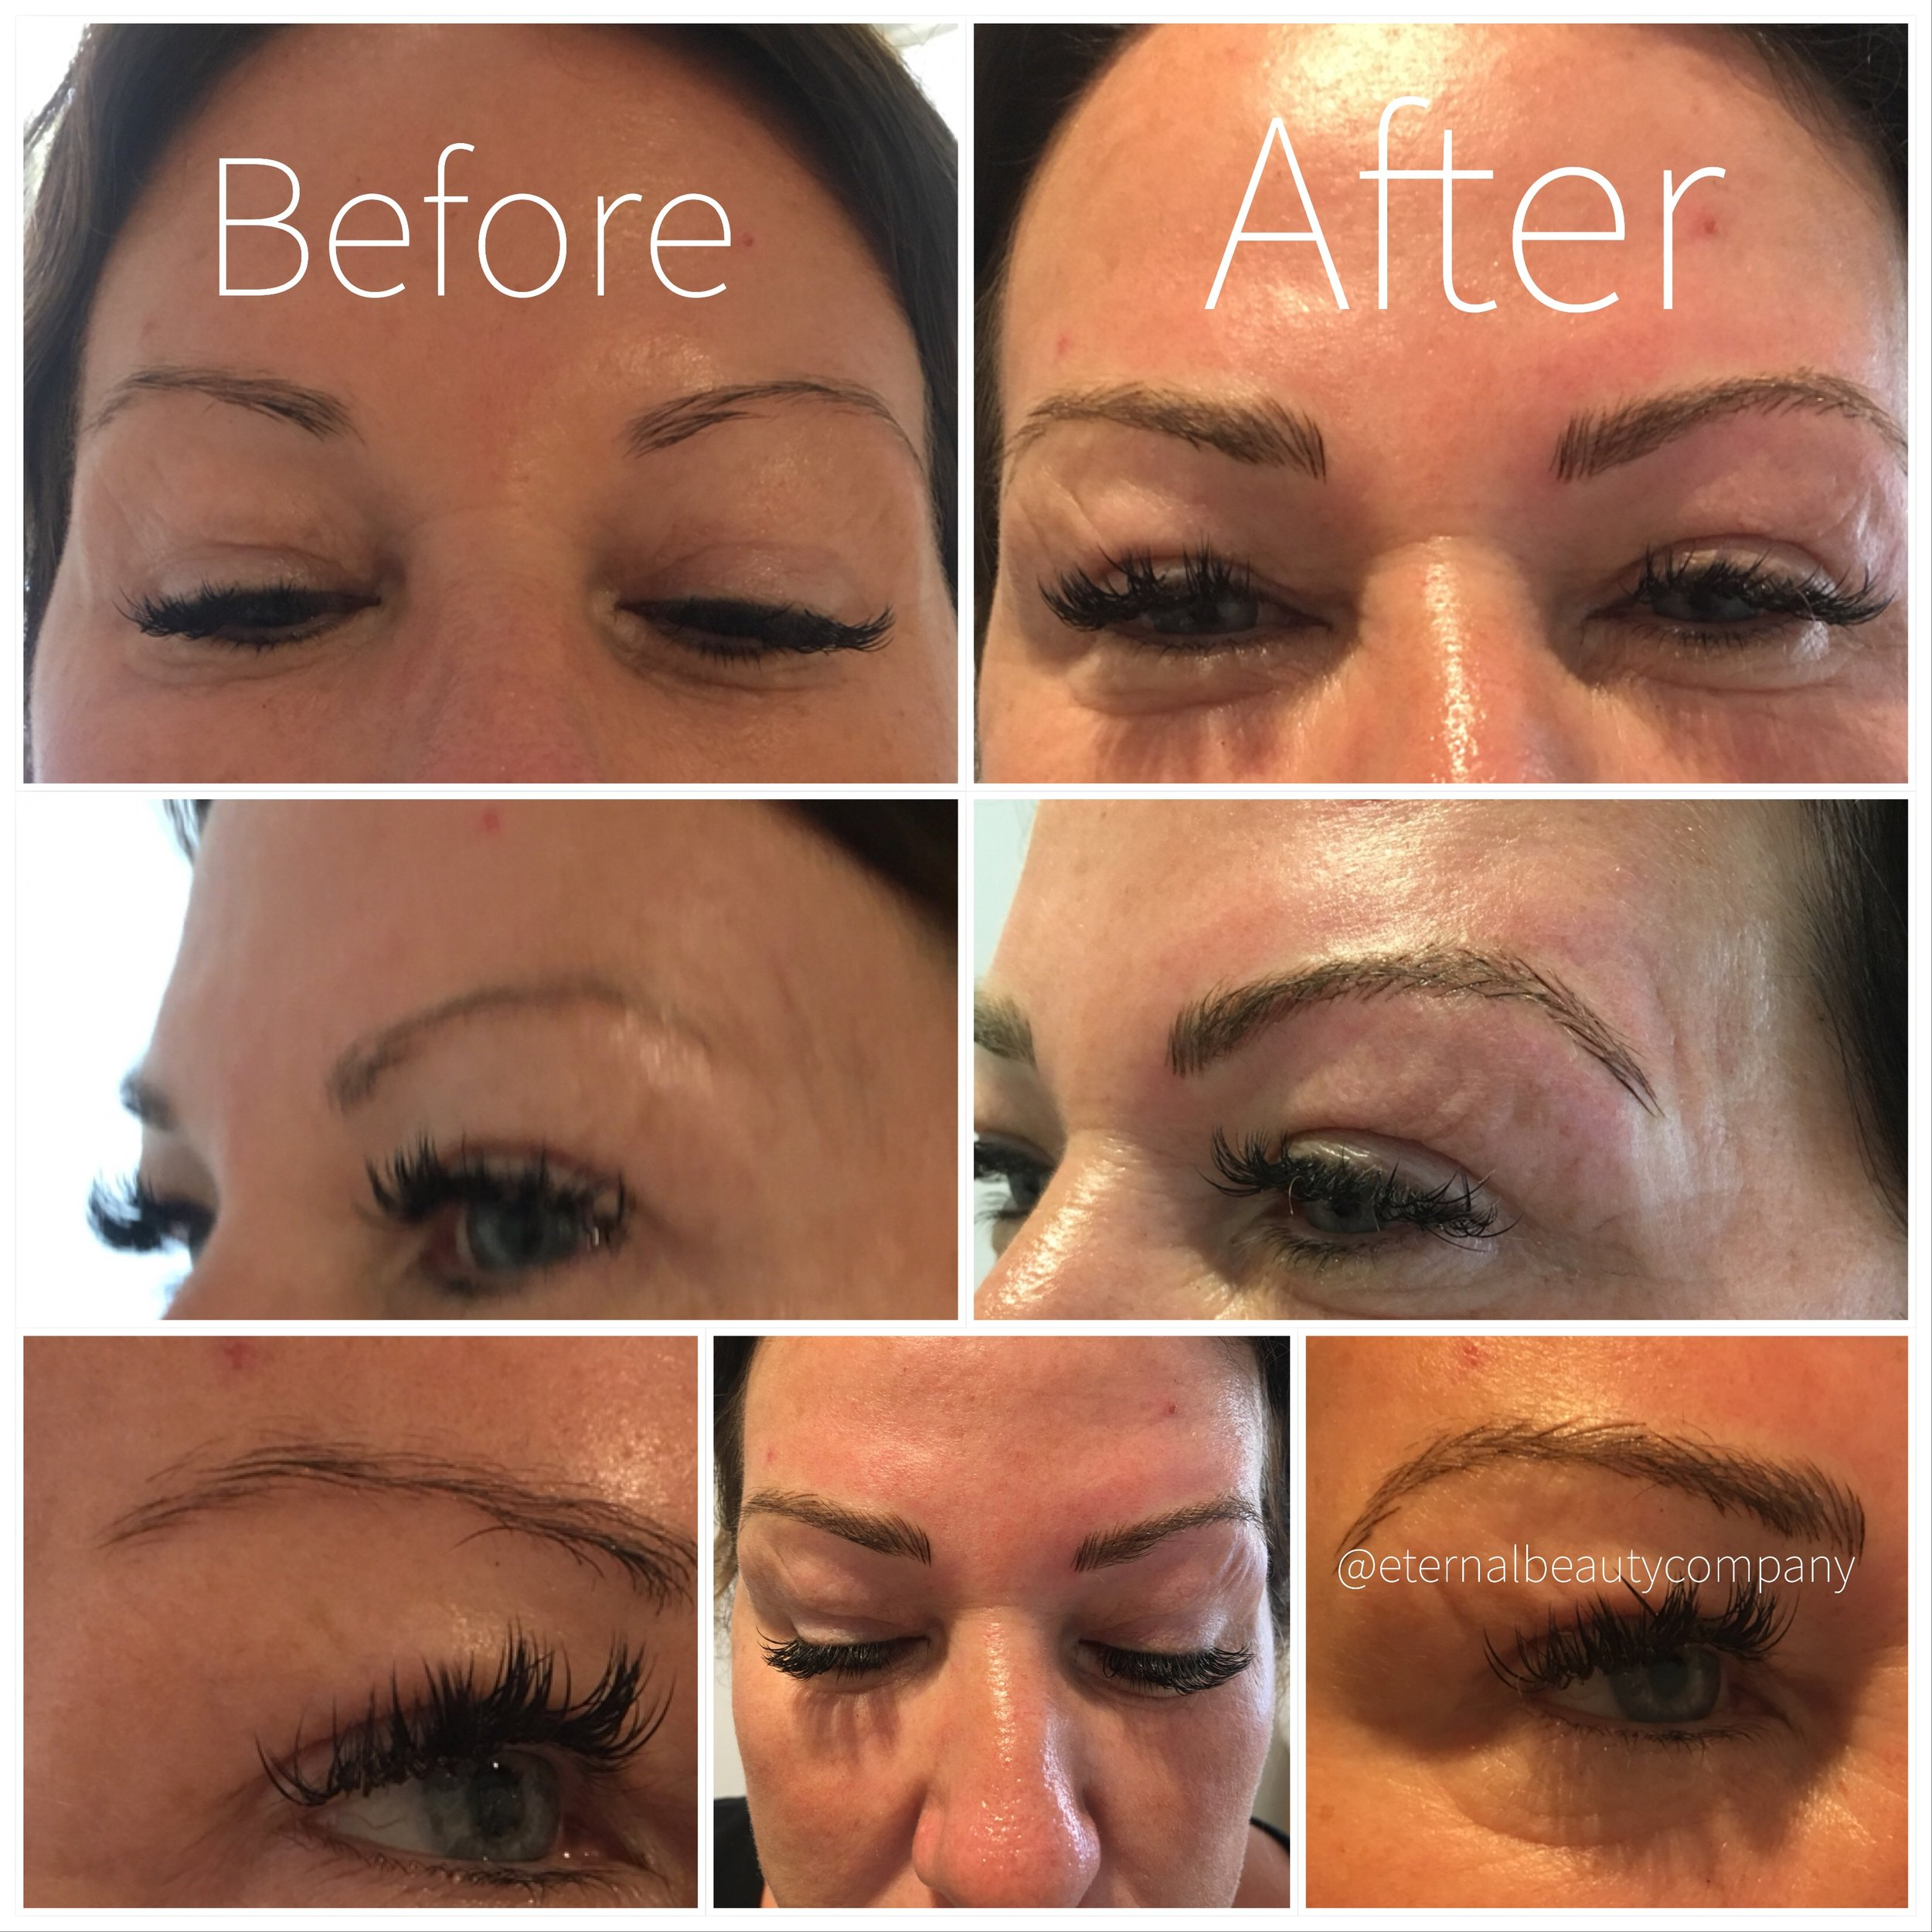 - Using a hand held tool each hairstroke is added to the brow. The tool is a similar to a pen but holds multiple needles to lightly etch the illusion of a hair stroke into the skin. Results last approx 12-18 months.Who is it best suited to?- Drier skin complexions as the needles don't penetrate too deeply- Those who want a realistic and feathery brow type- Those who want natural style brows- Those who want to want the results to not be as long as long lasting as device brows